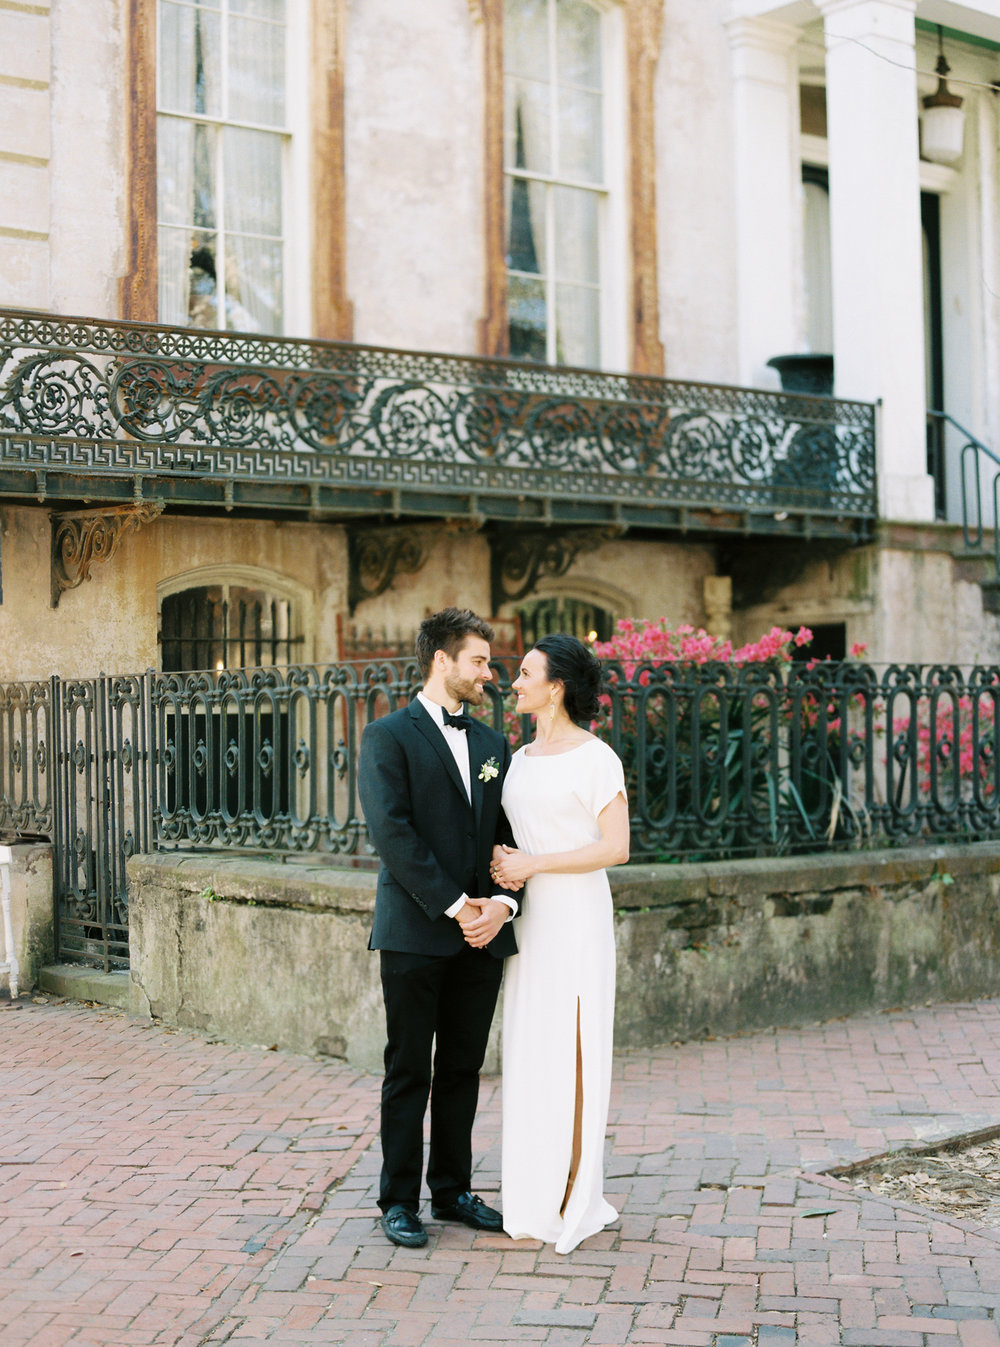 Downtown Savannah historic district wedding